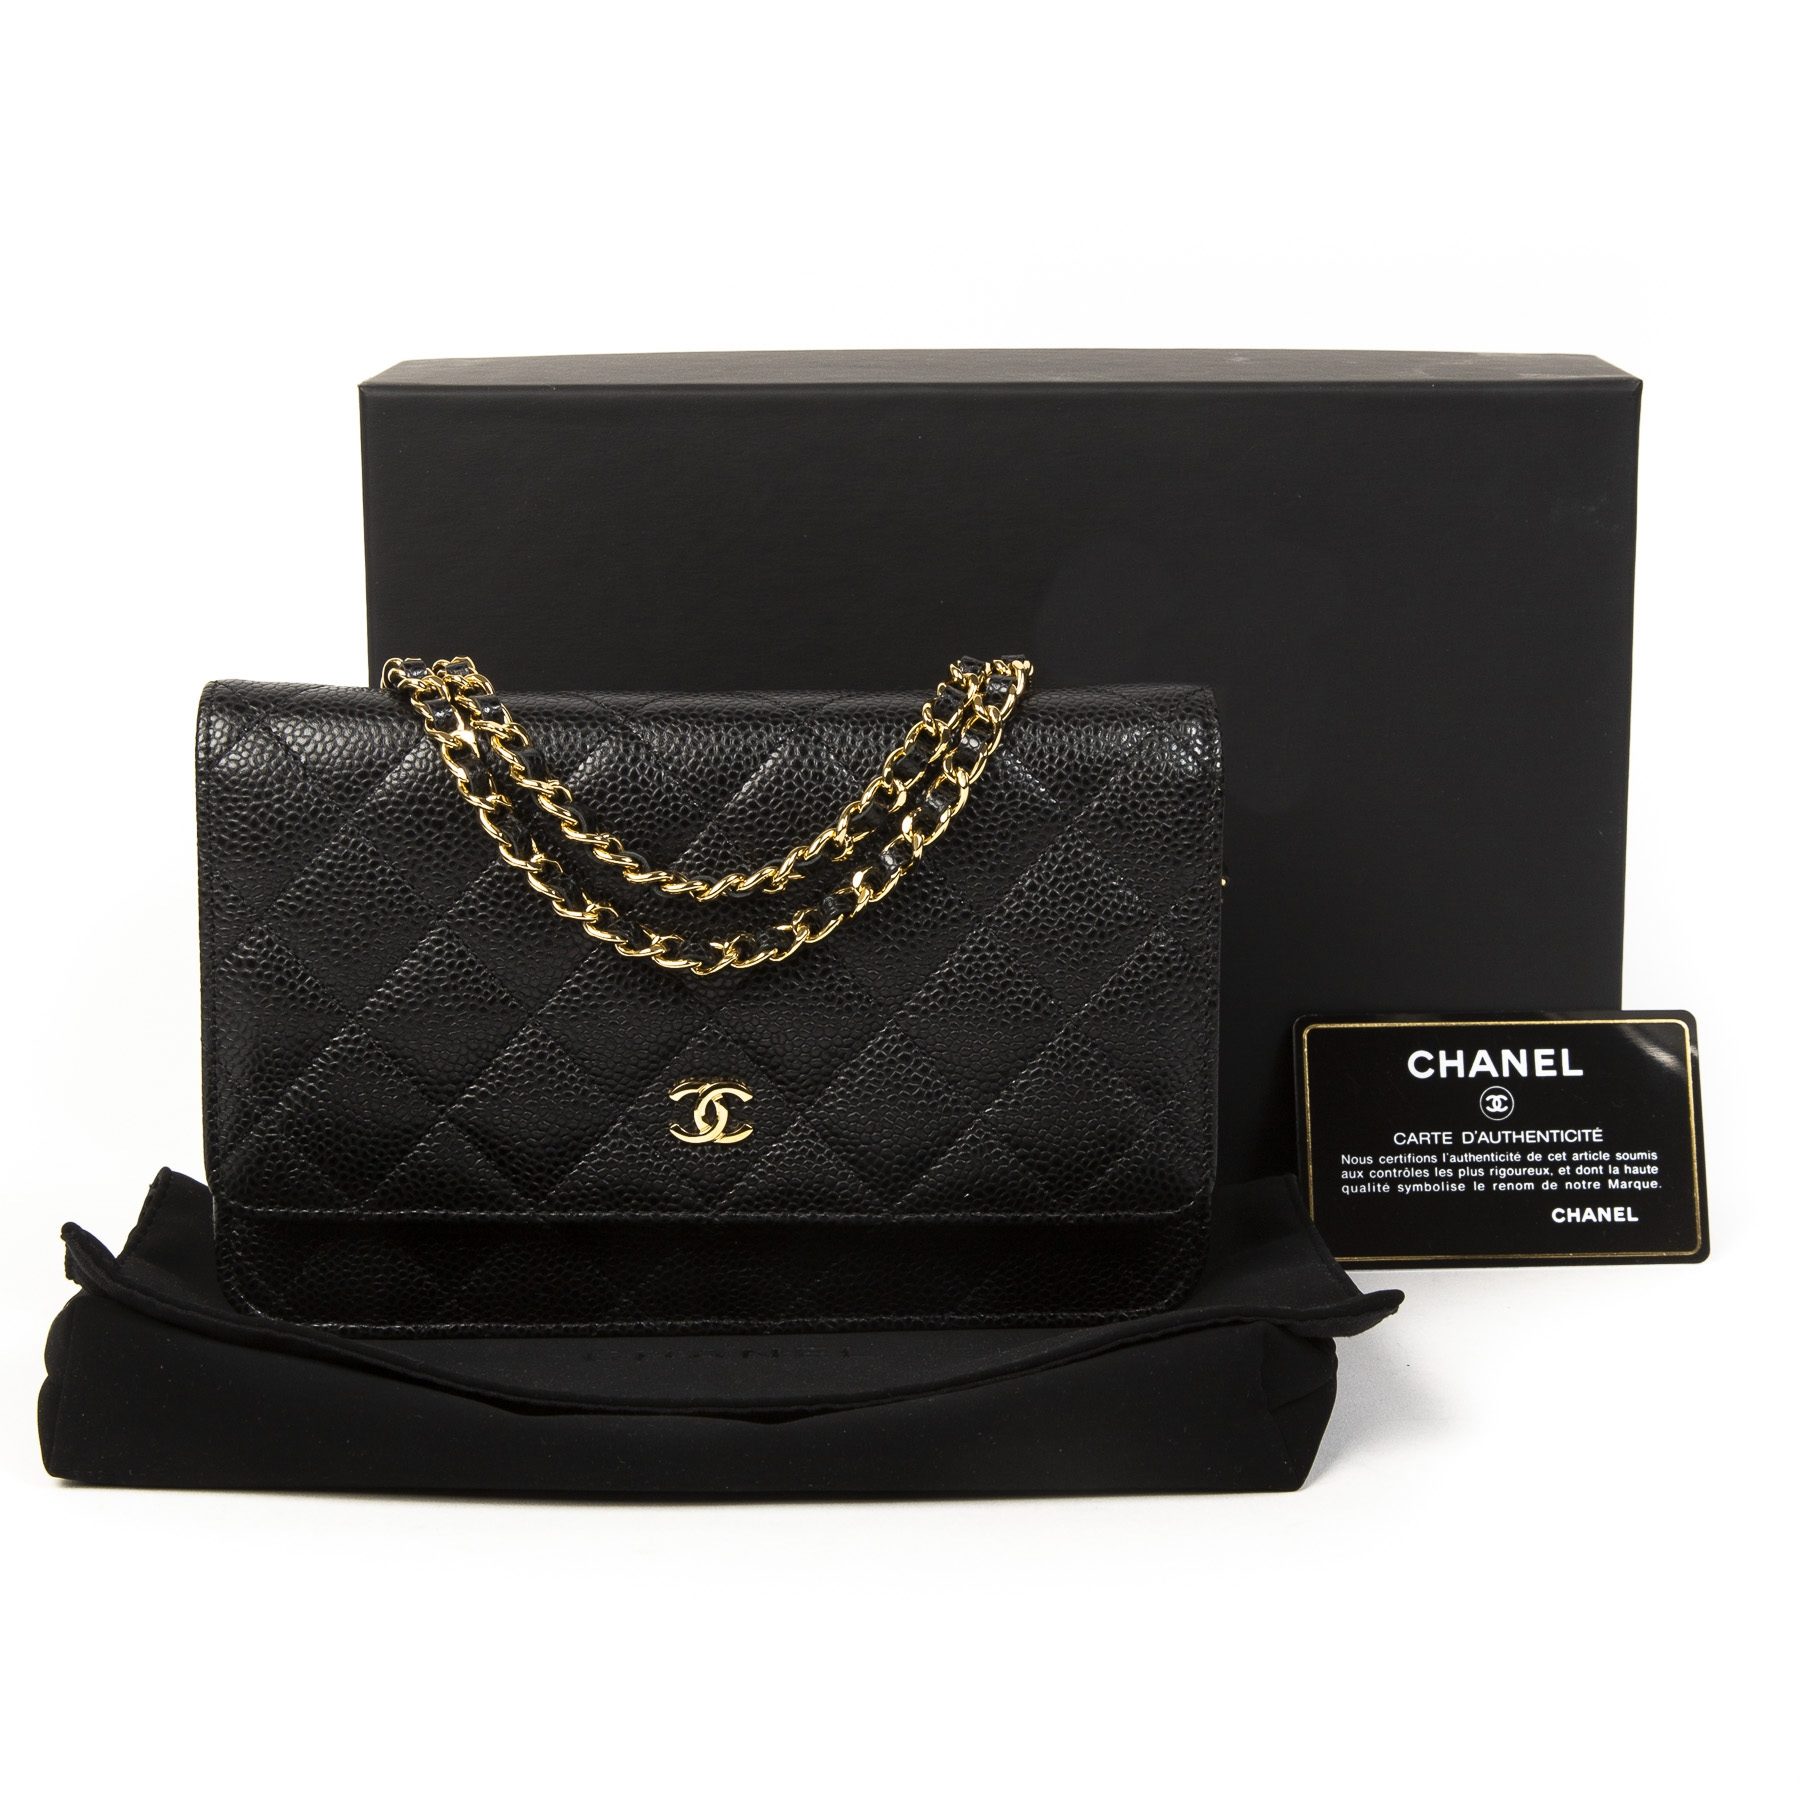 c99dc2244 ... Chanel Black Caviar Leather Wallet On Chain. Buy secondhand Chanel  handbags at Labellov. Safe